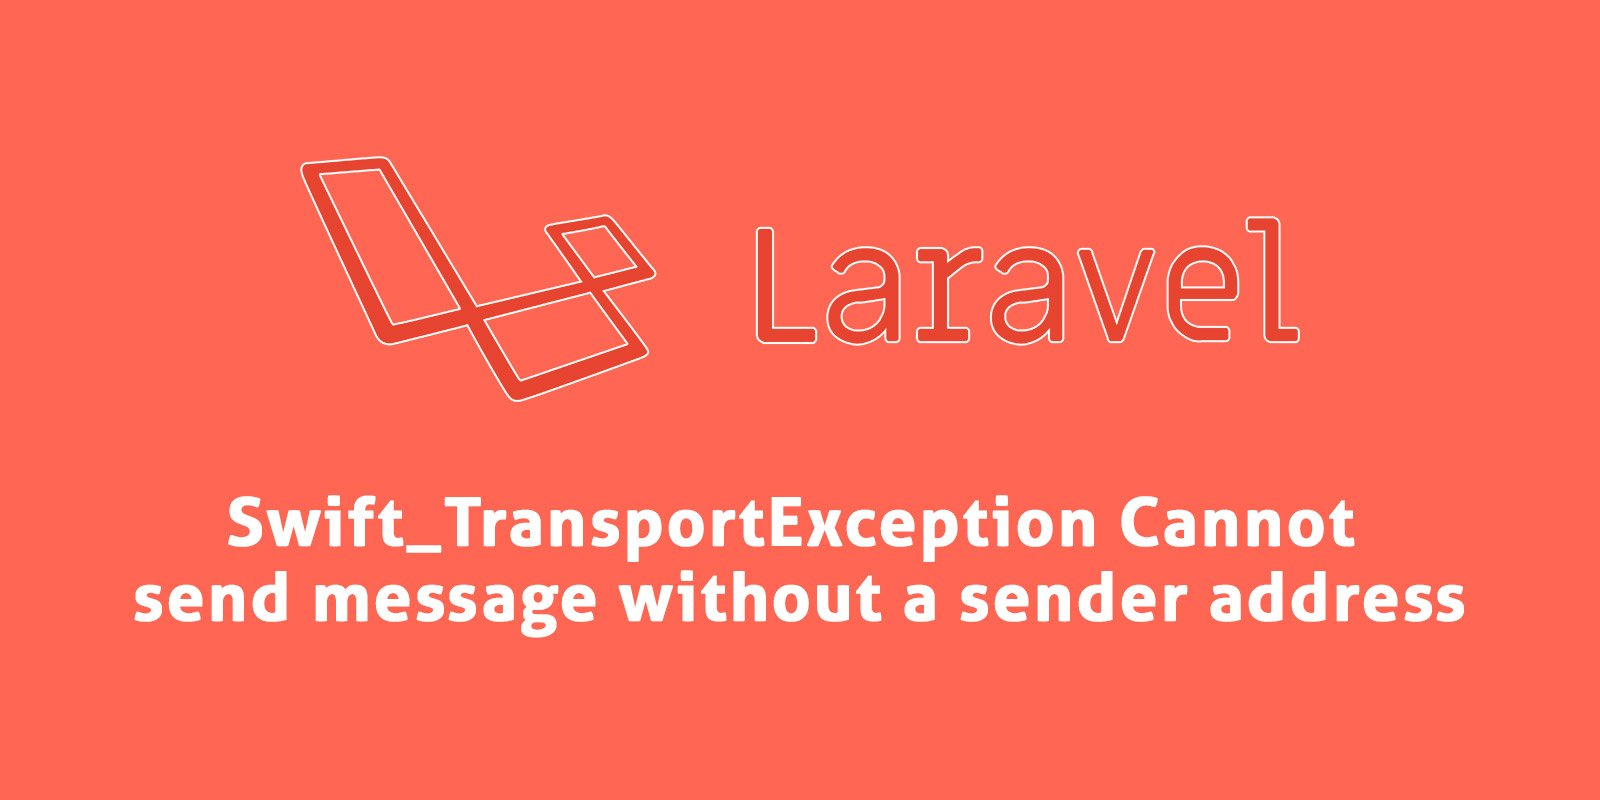 [solved] Laravel 7 Swift_TransportException Cannot send message without a sender address